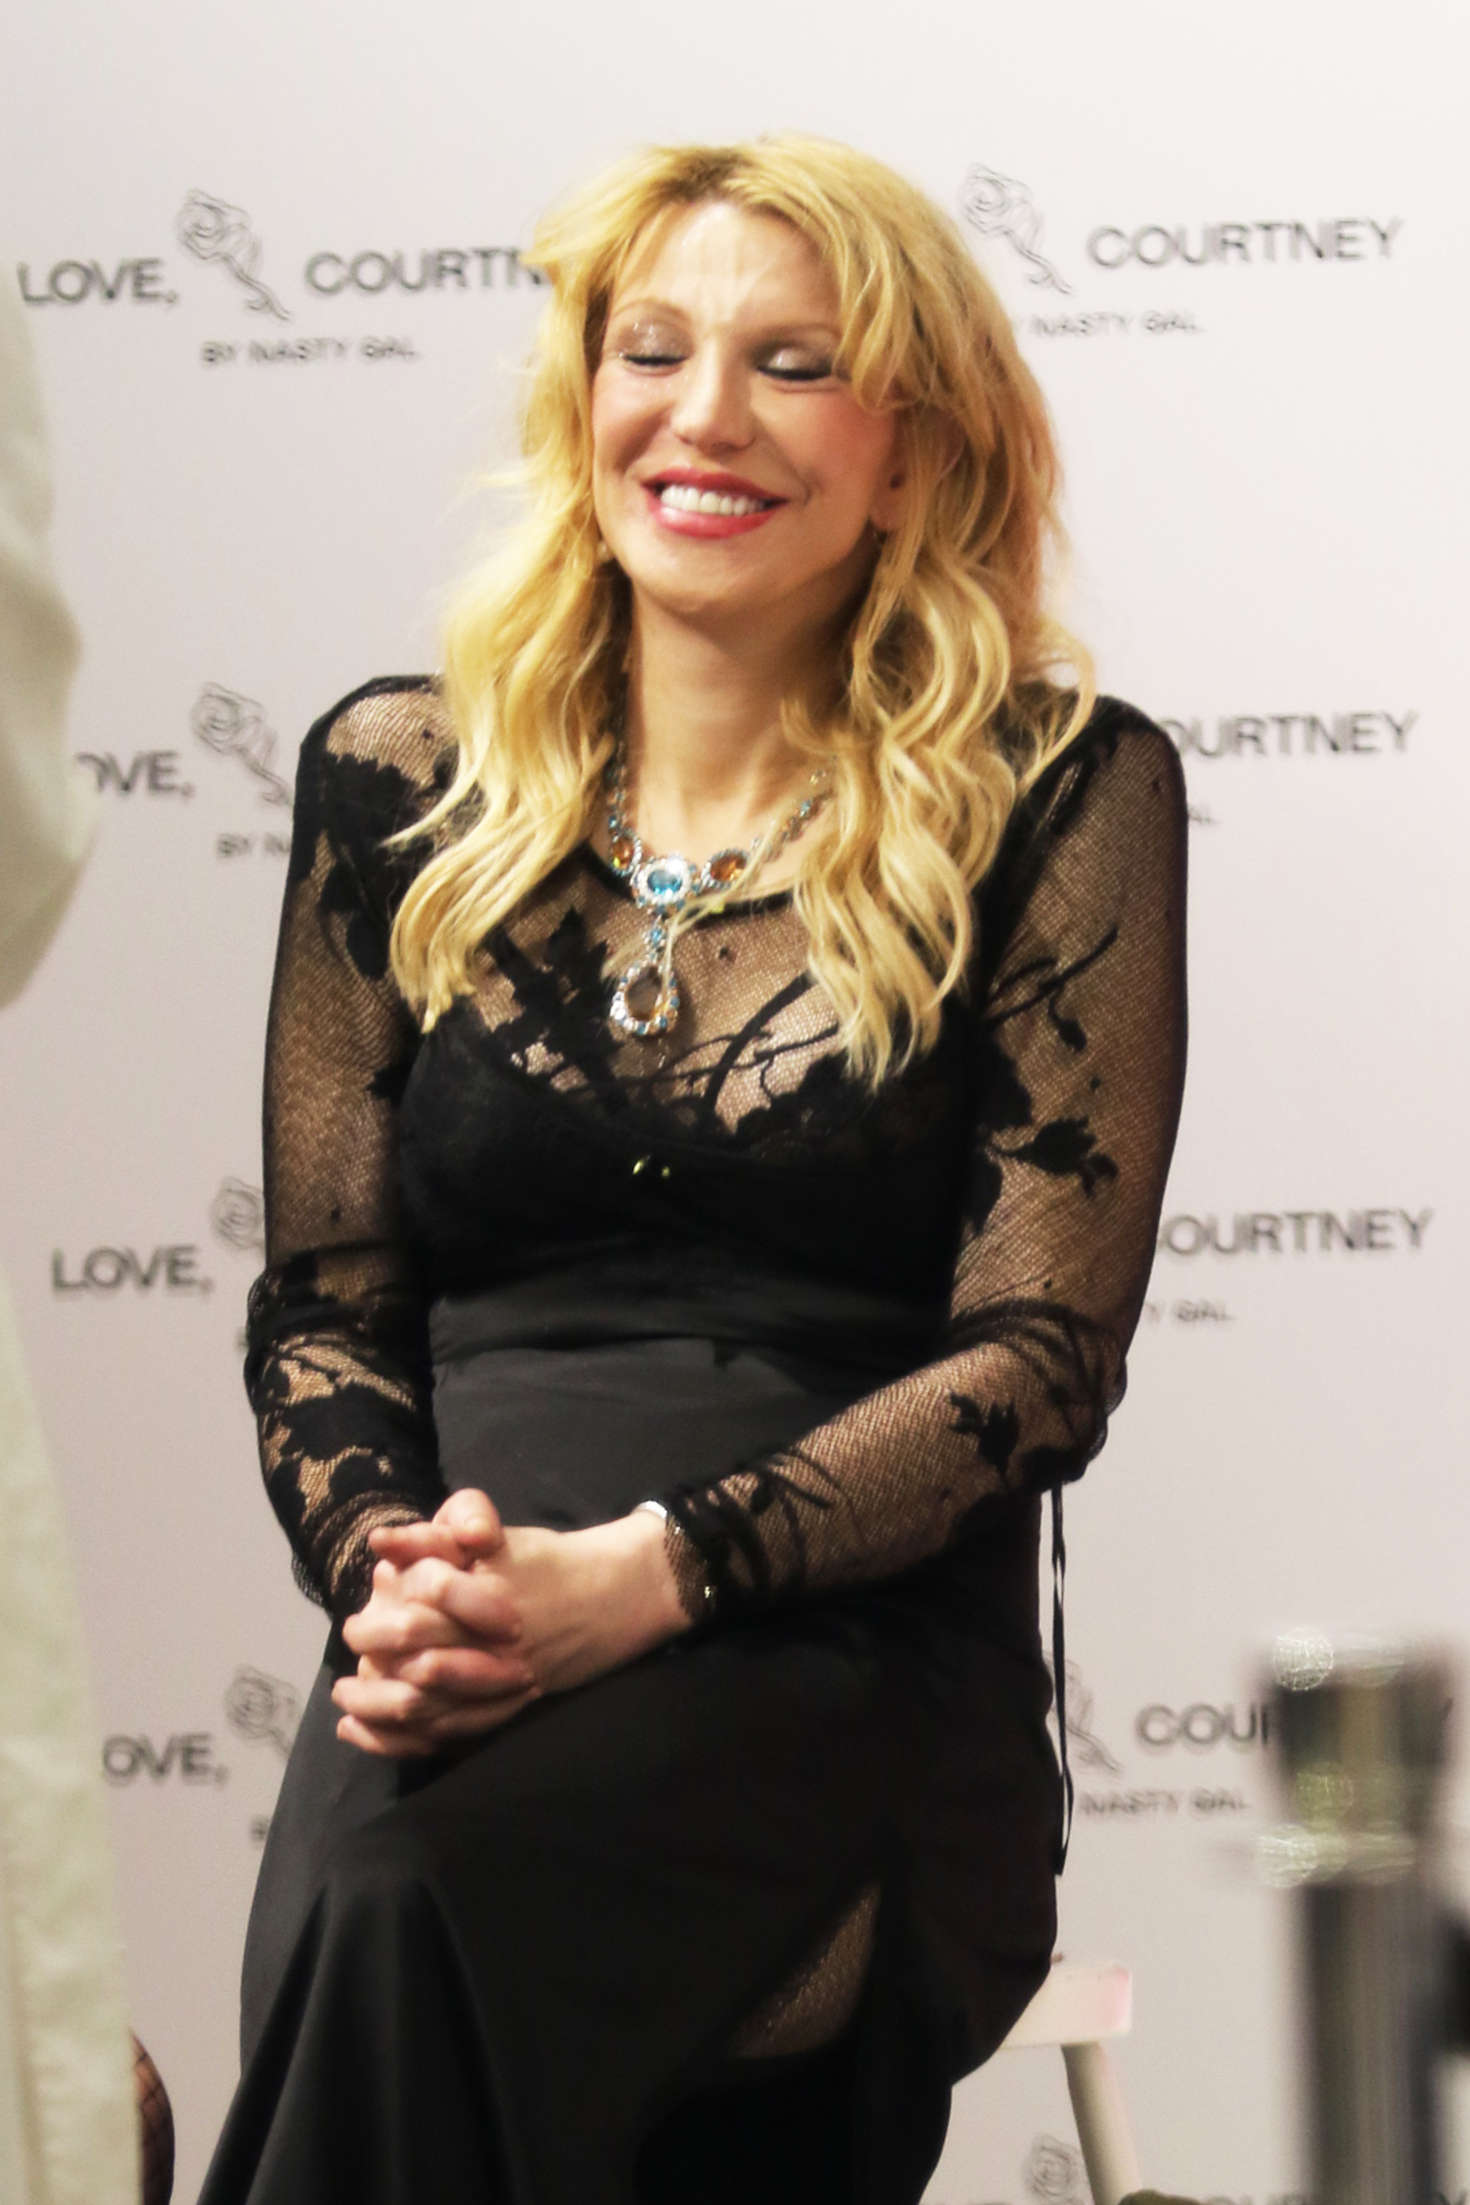 Courtney Love New Collection Launch at Nasty Gal in West Hollywood